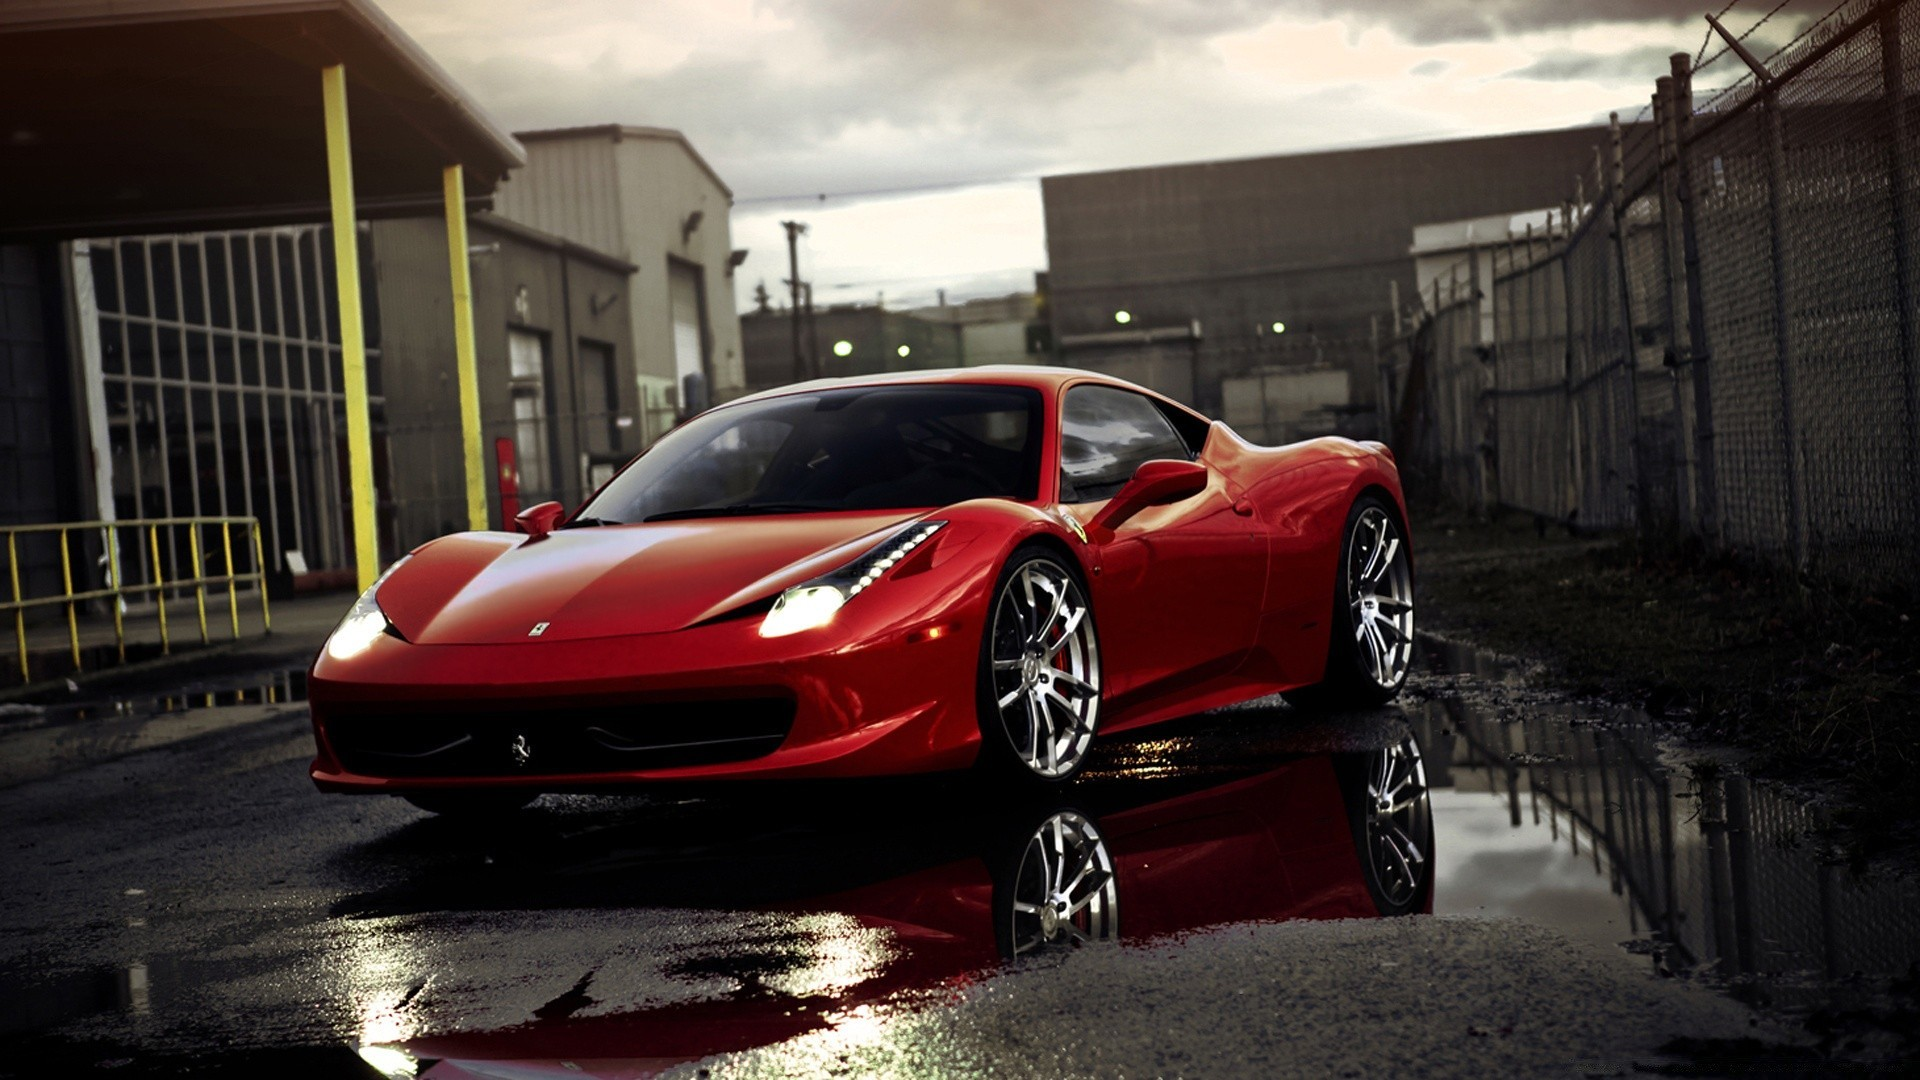 cars wallpapers free download hd amazing new latest - HD 1920×1080